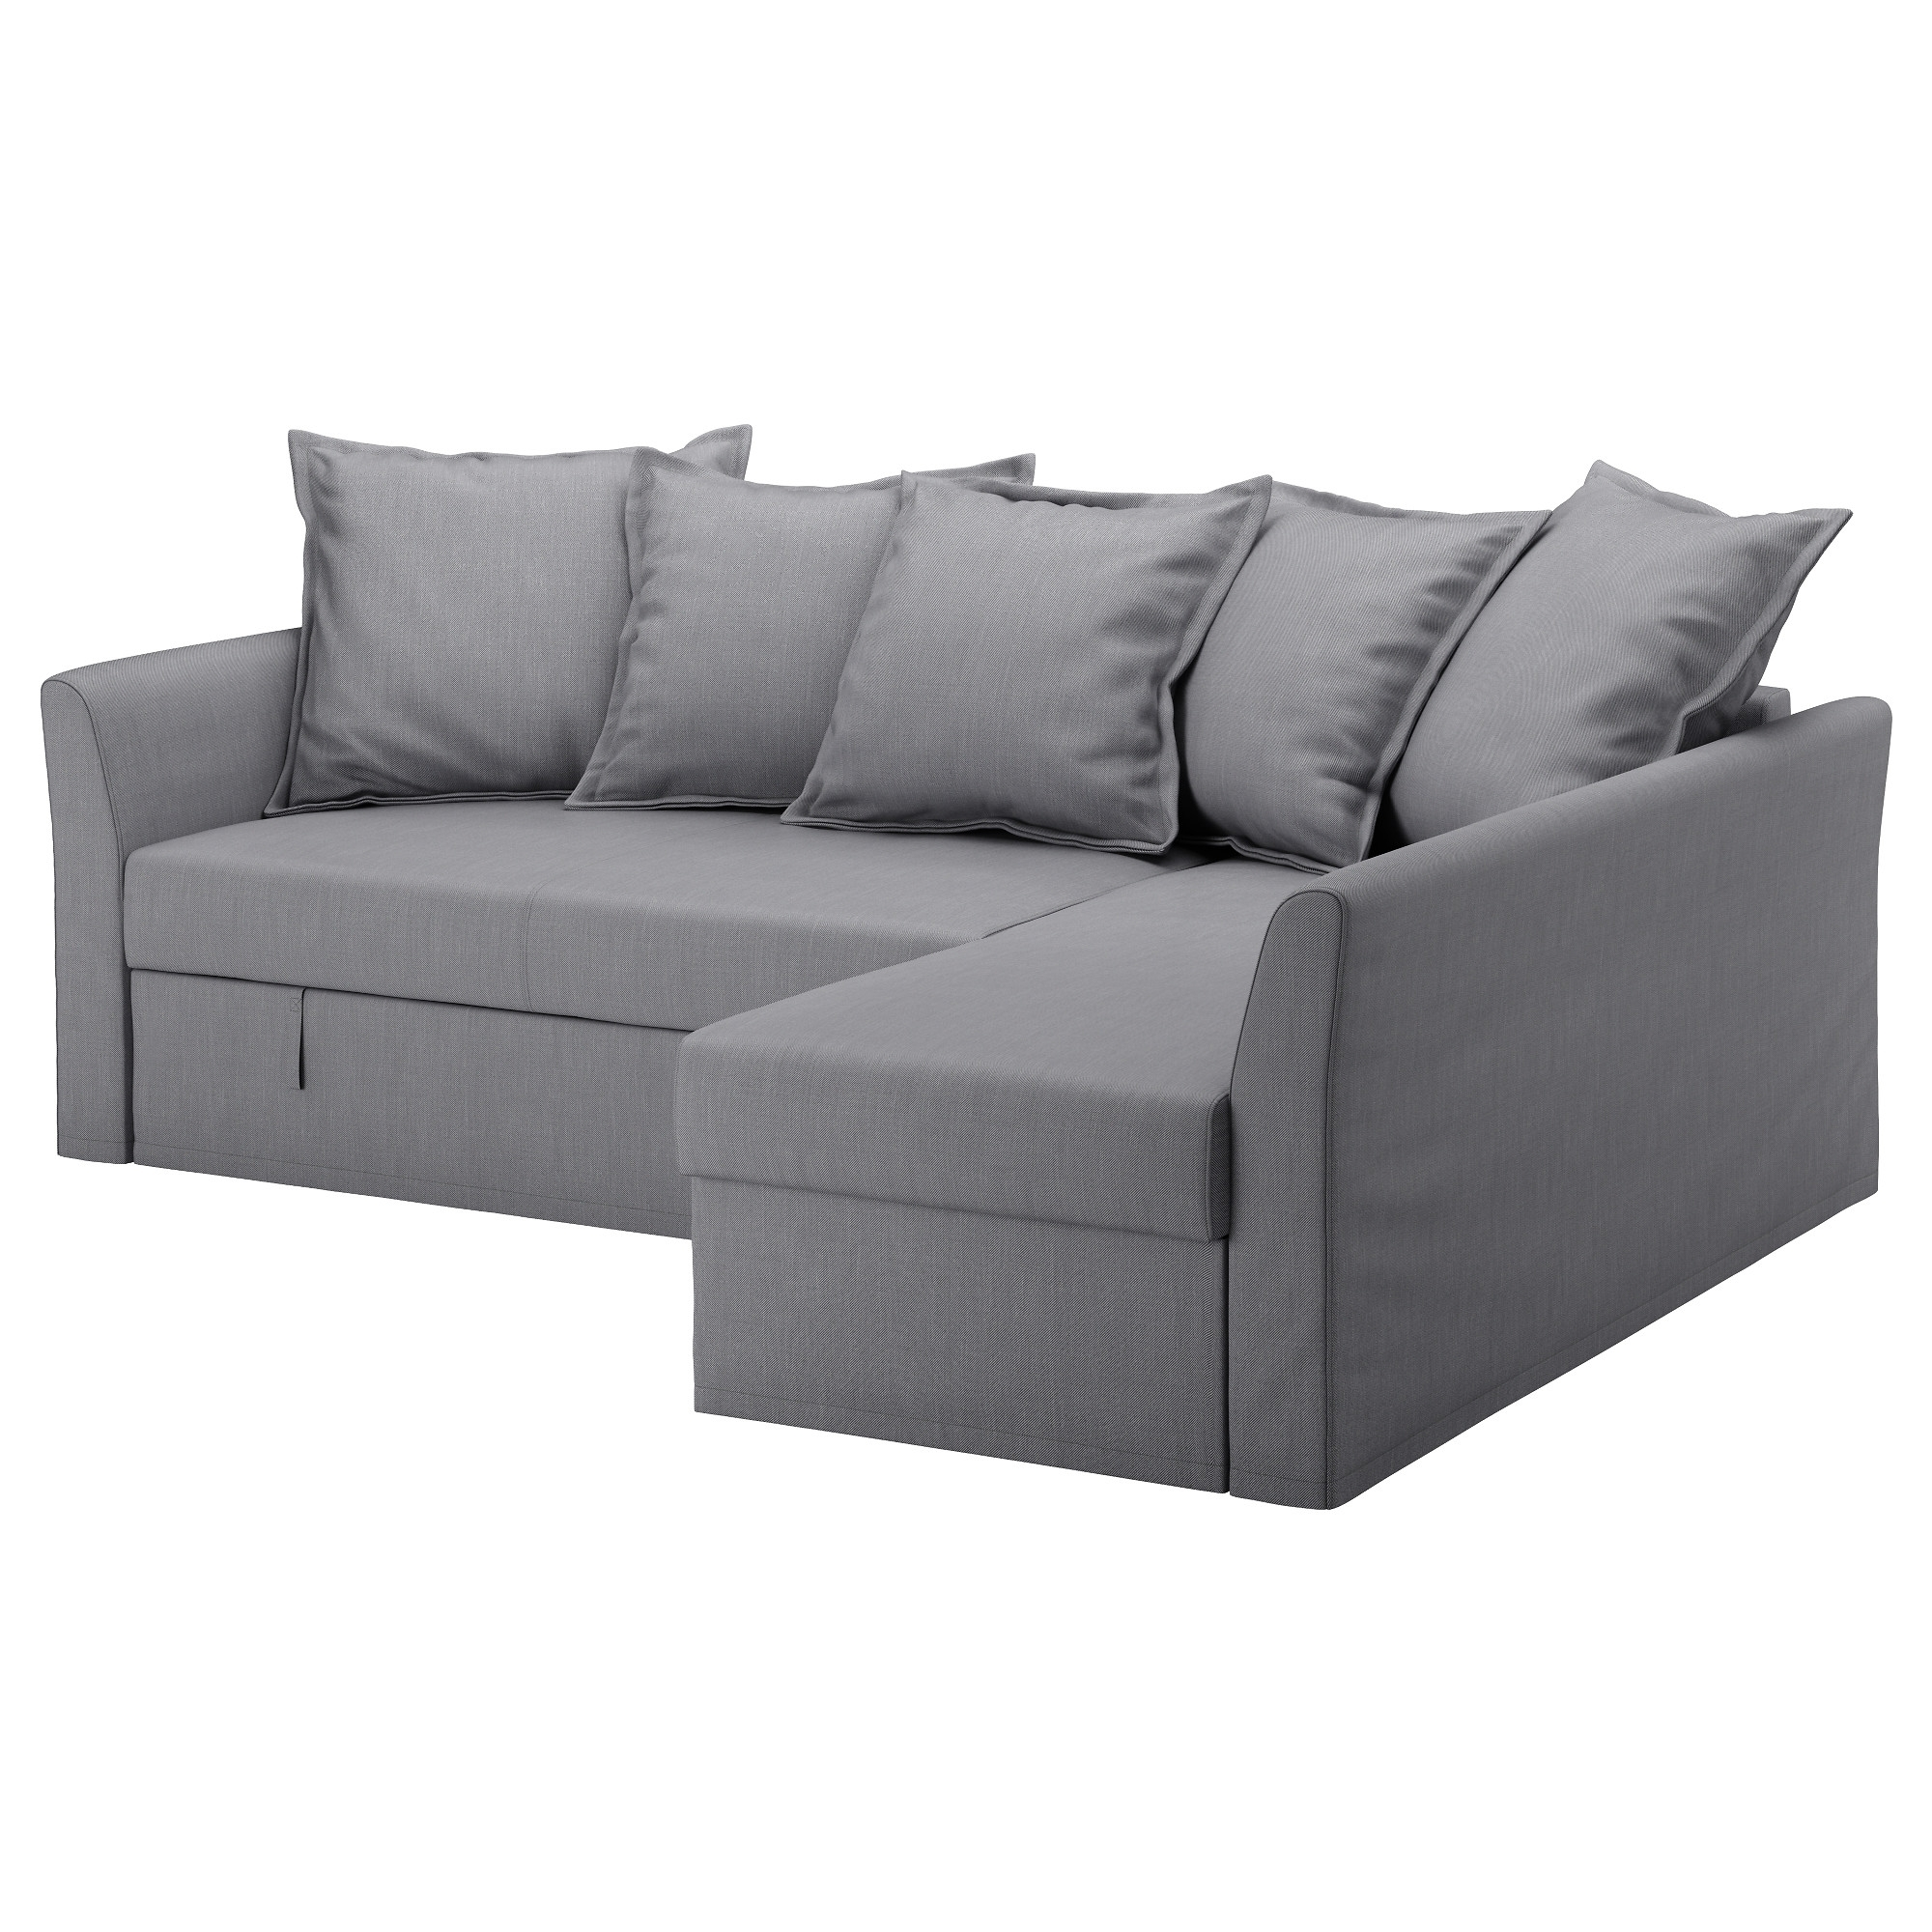 top 10 sleeper sofas how thick are sofa bed mattresses best ideas ikea sectional